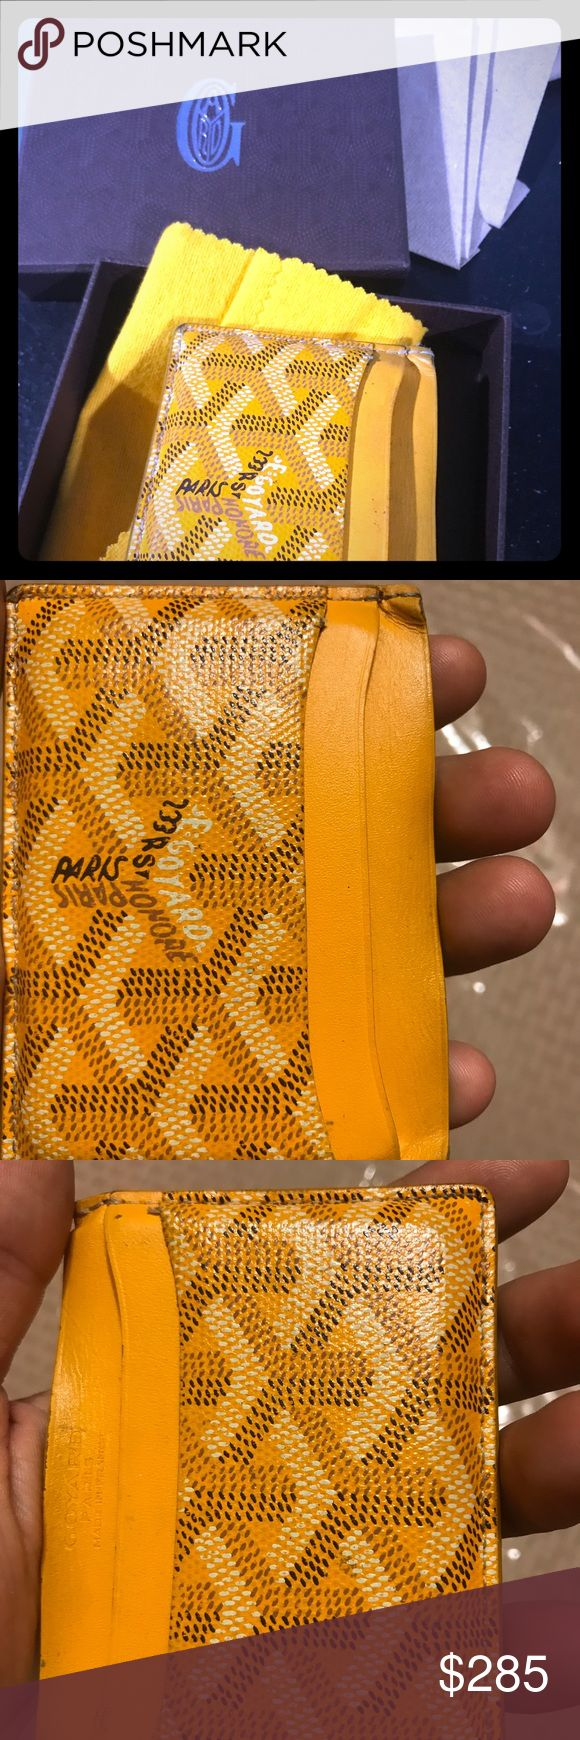 100% authentic used goyard wallet card holder.8/10 8/10 condition. Used for 2 months. Got a new one as a birthday gift so i am selling this one. Comes with original box & dustbag. Looking for $250 but will negotiate . Goes for way more on eBay. Wallet is in  GREAT CONDITION & Has a lot of life left in it! Message me for more pictures or details goyard Accessories Key & Card Holders